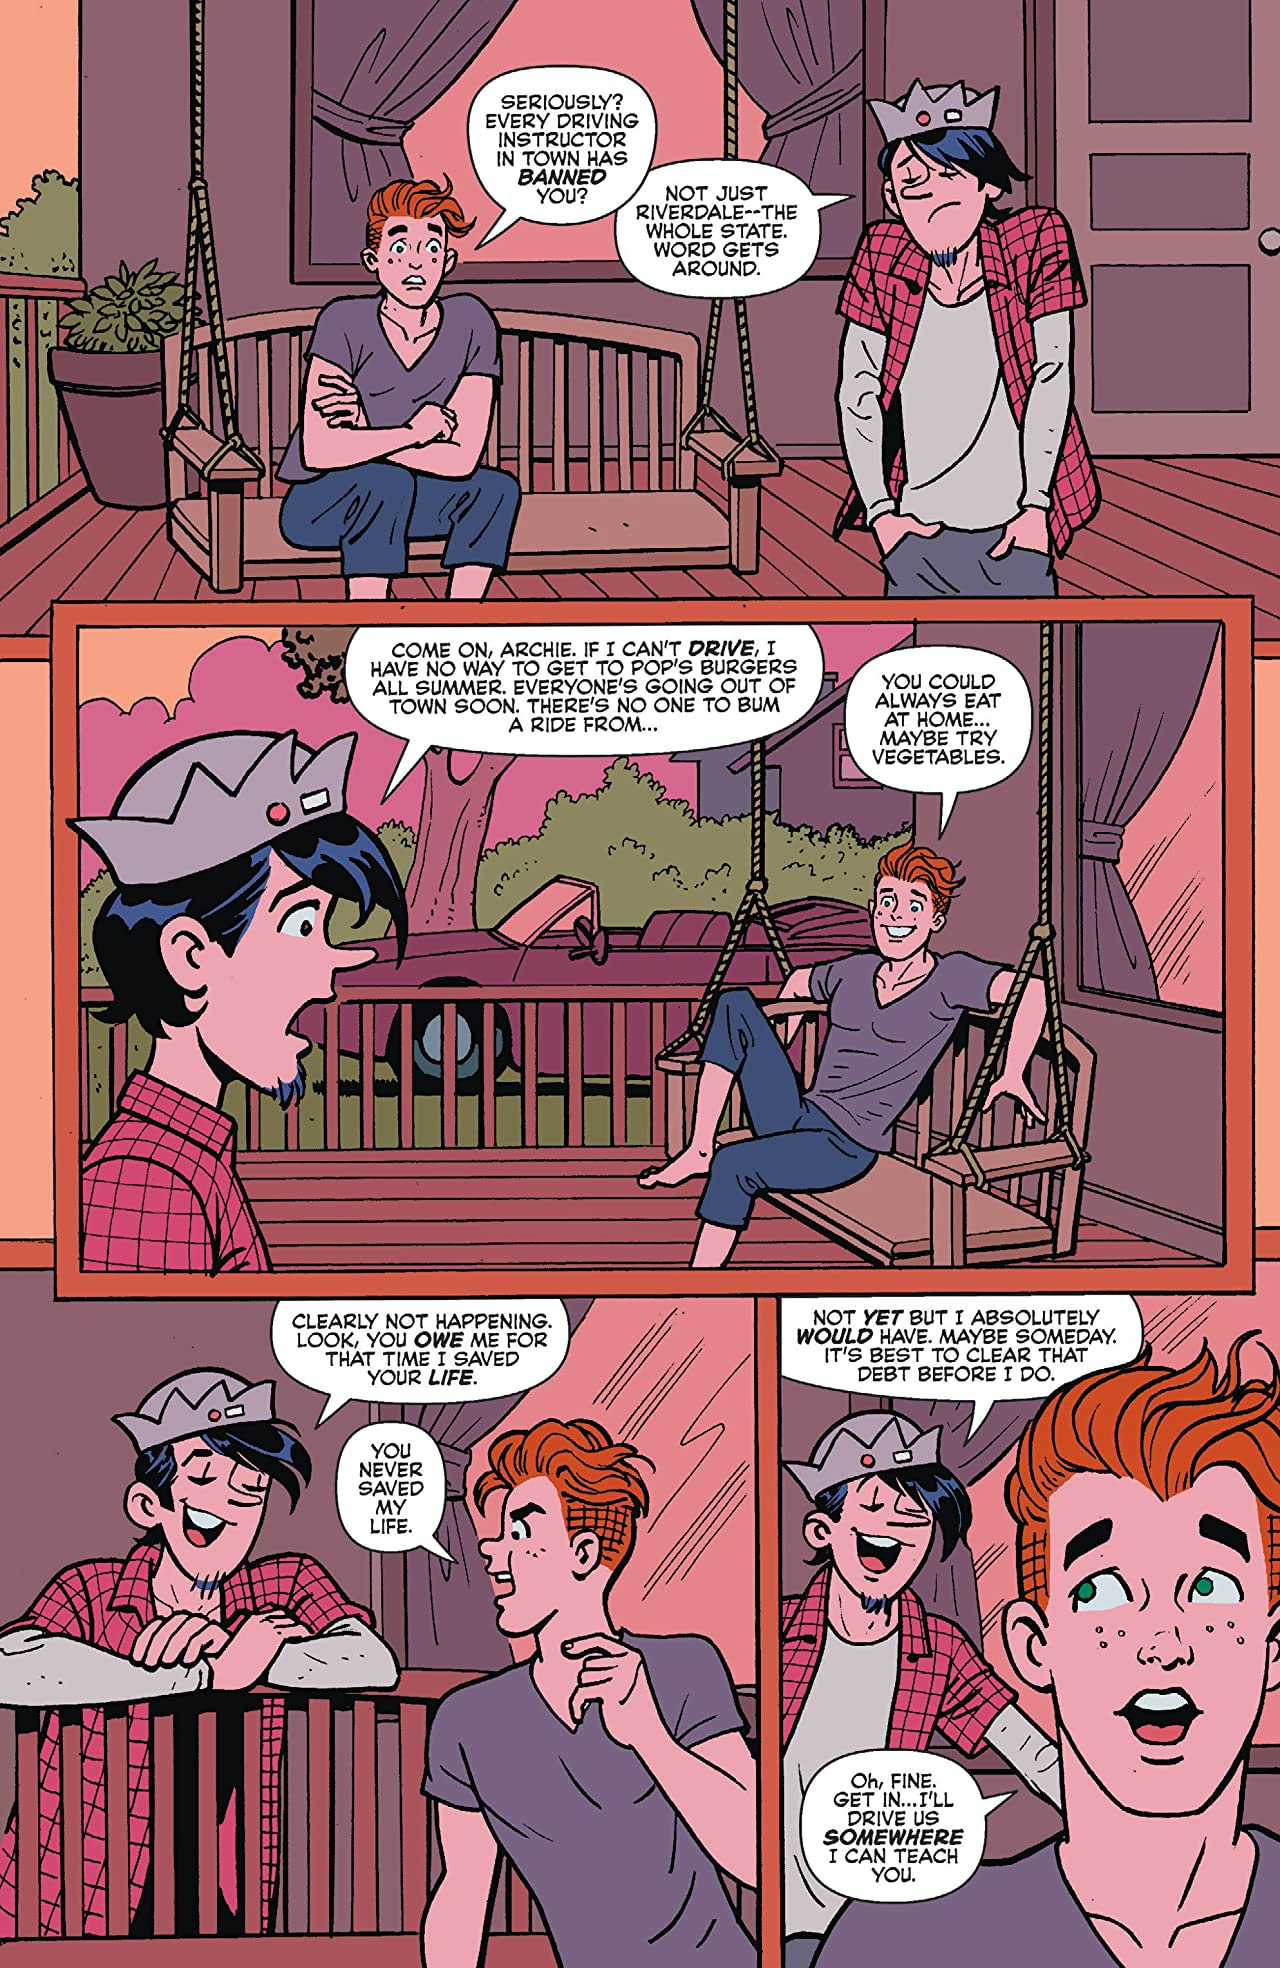 Your Pal Archie Vol. 1